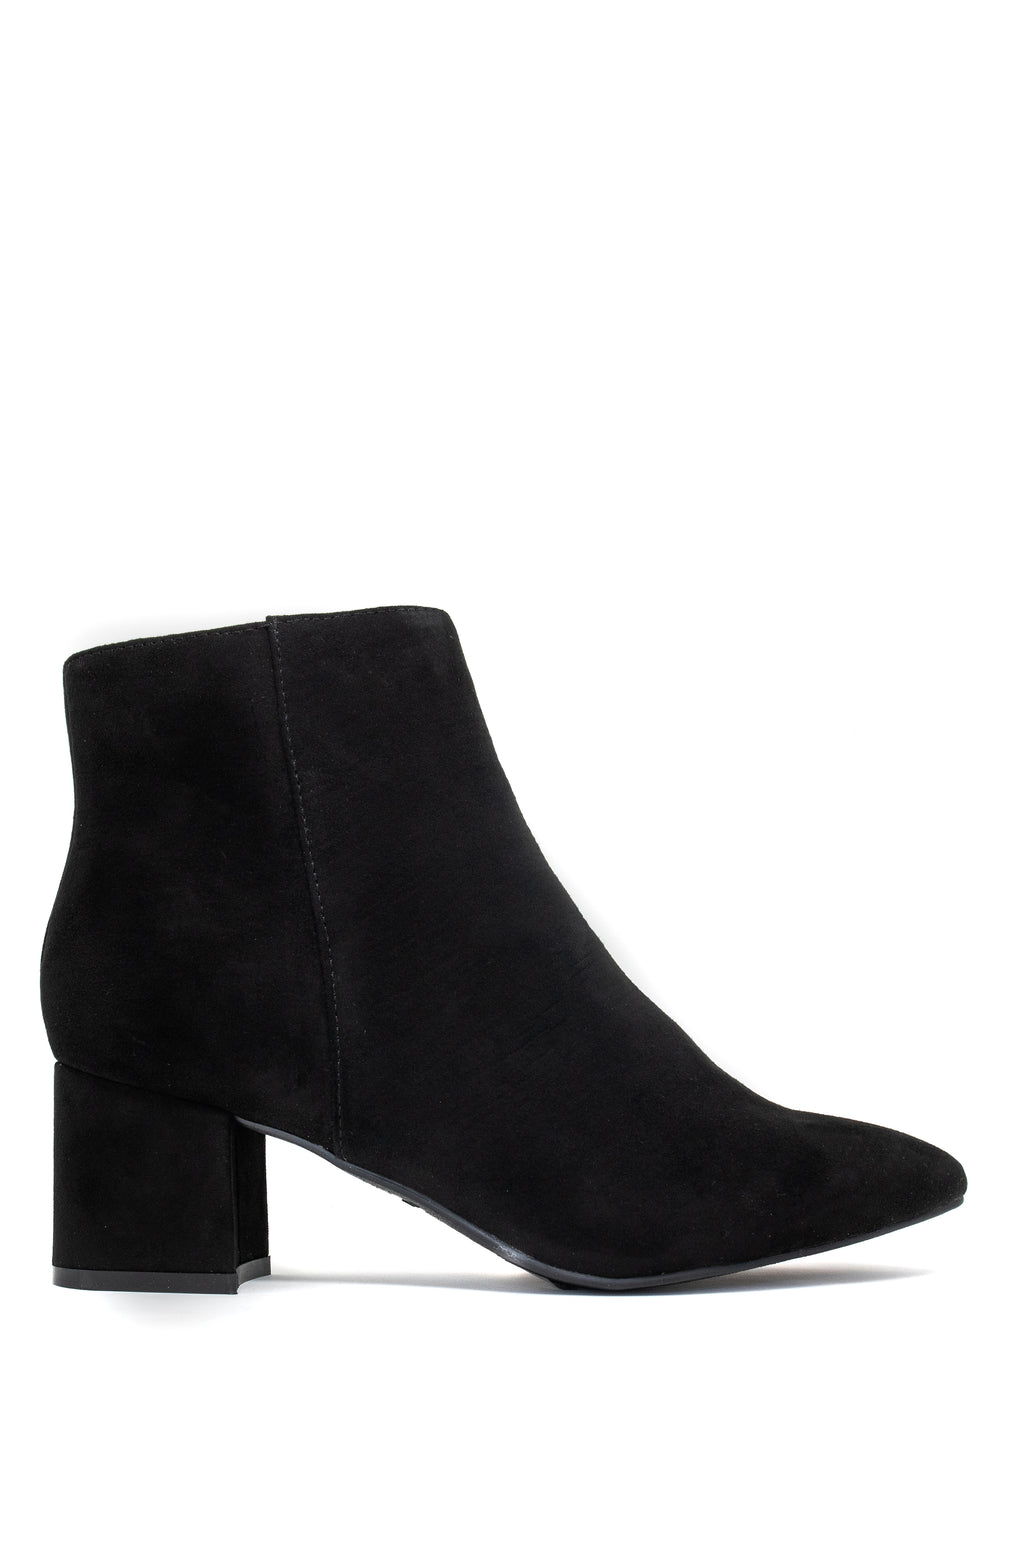 Keep In Touch - Black Booties